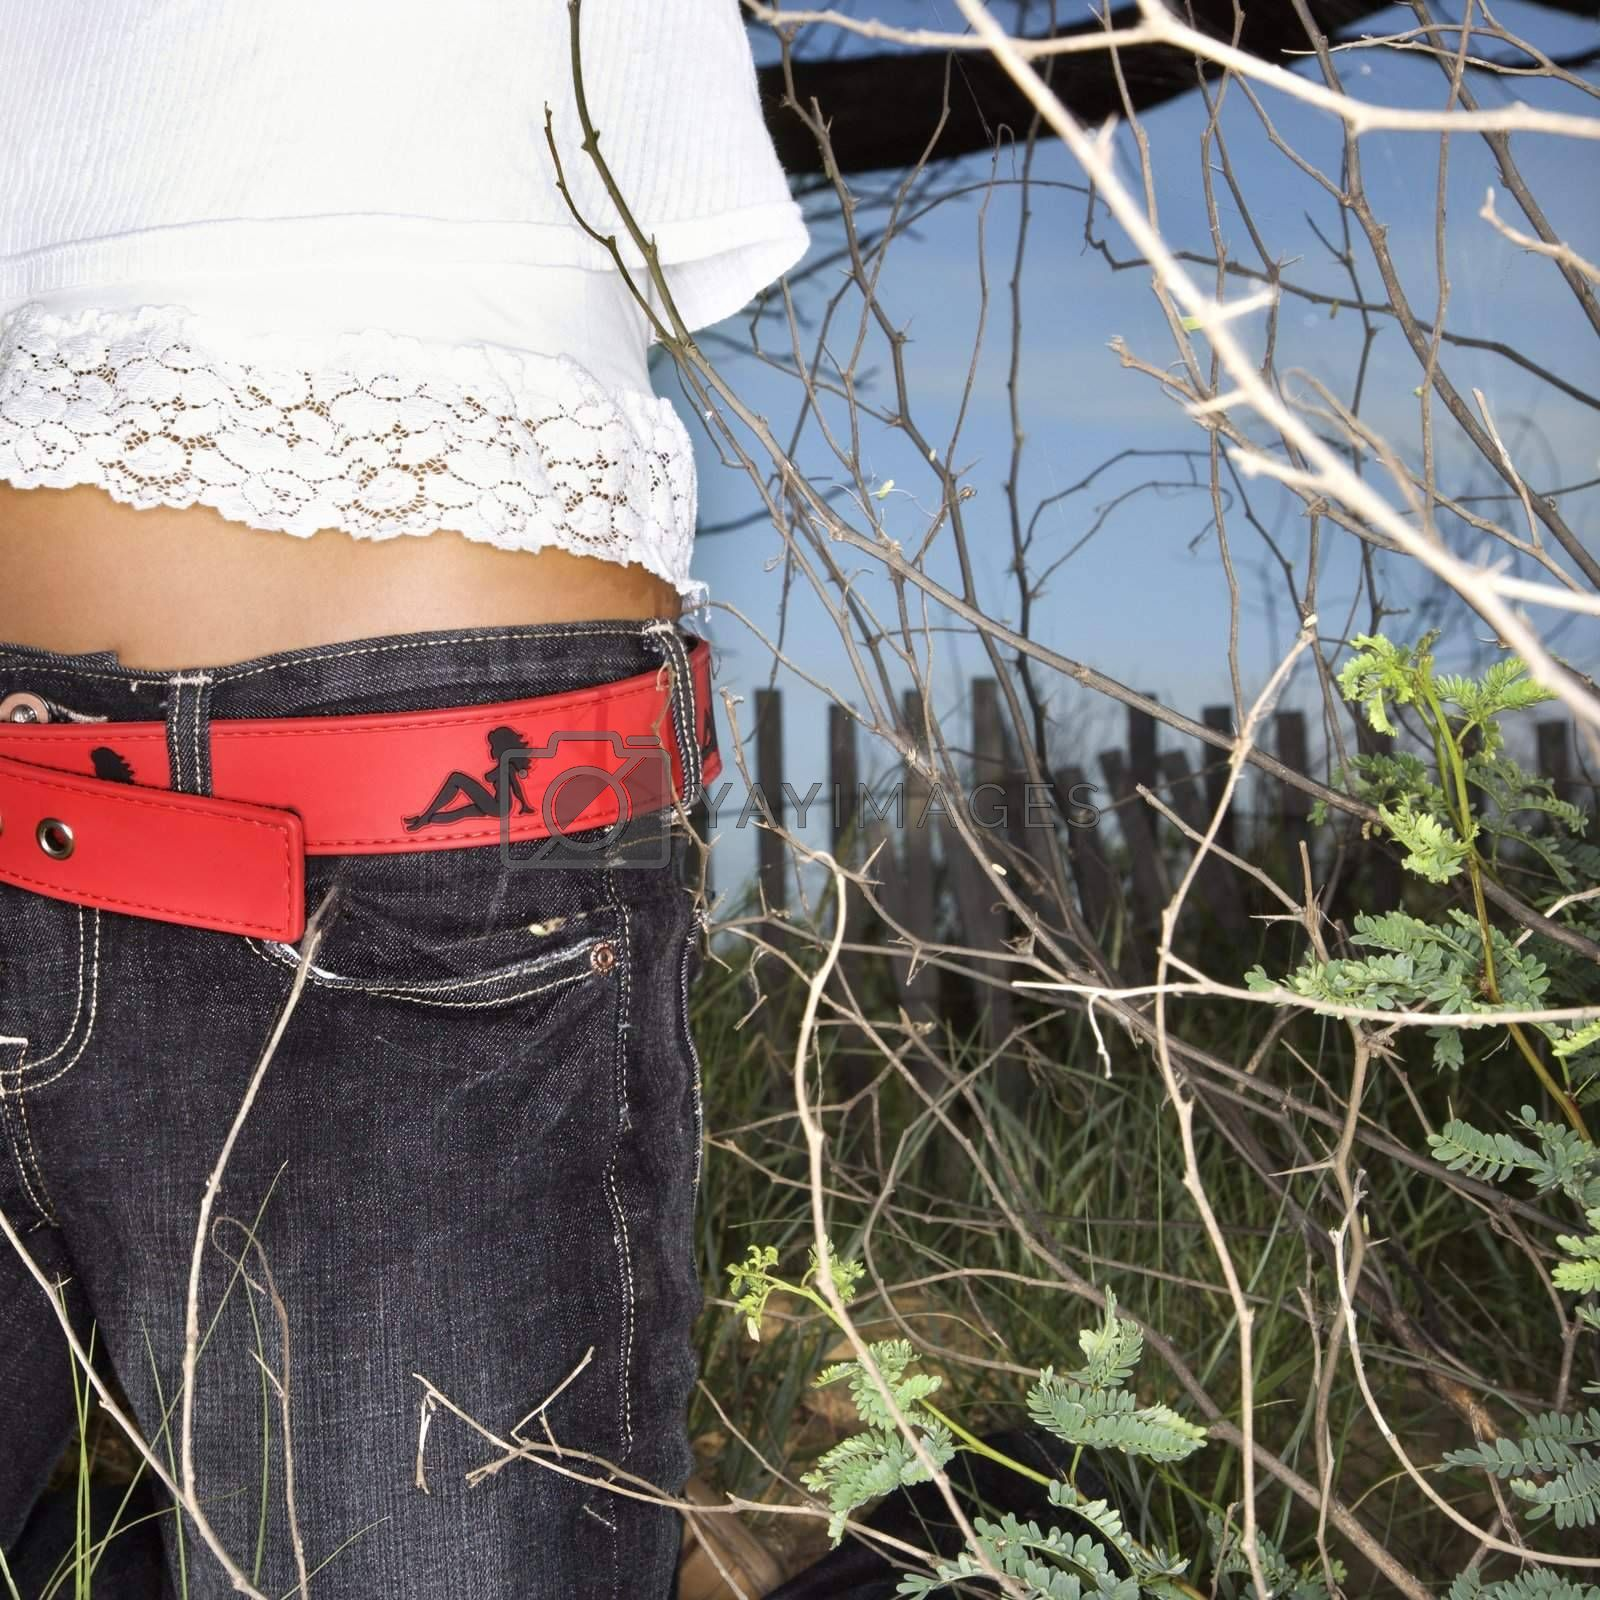 Young adult Asian female torso with red belt outside.